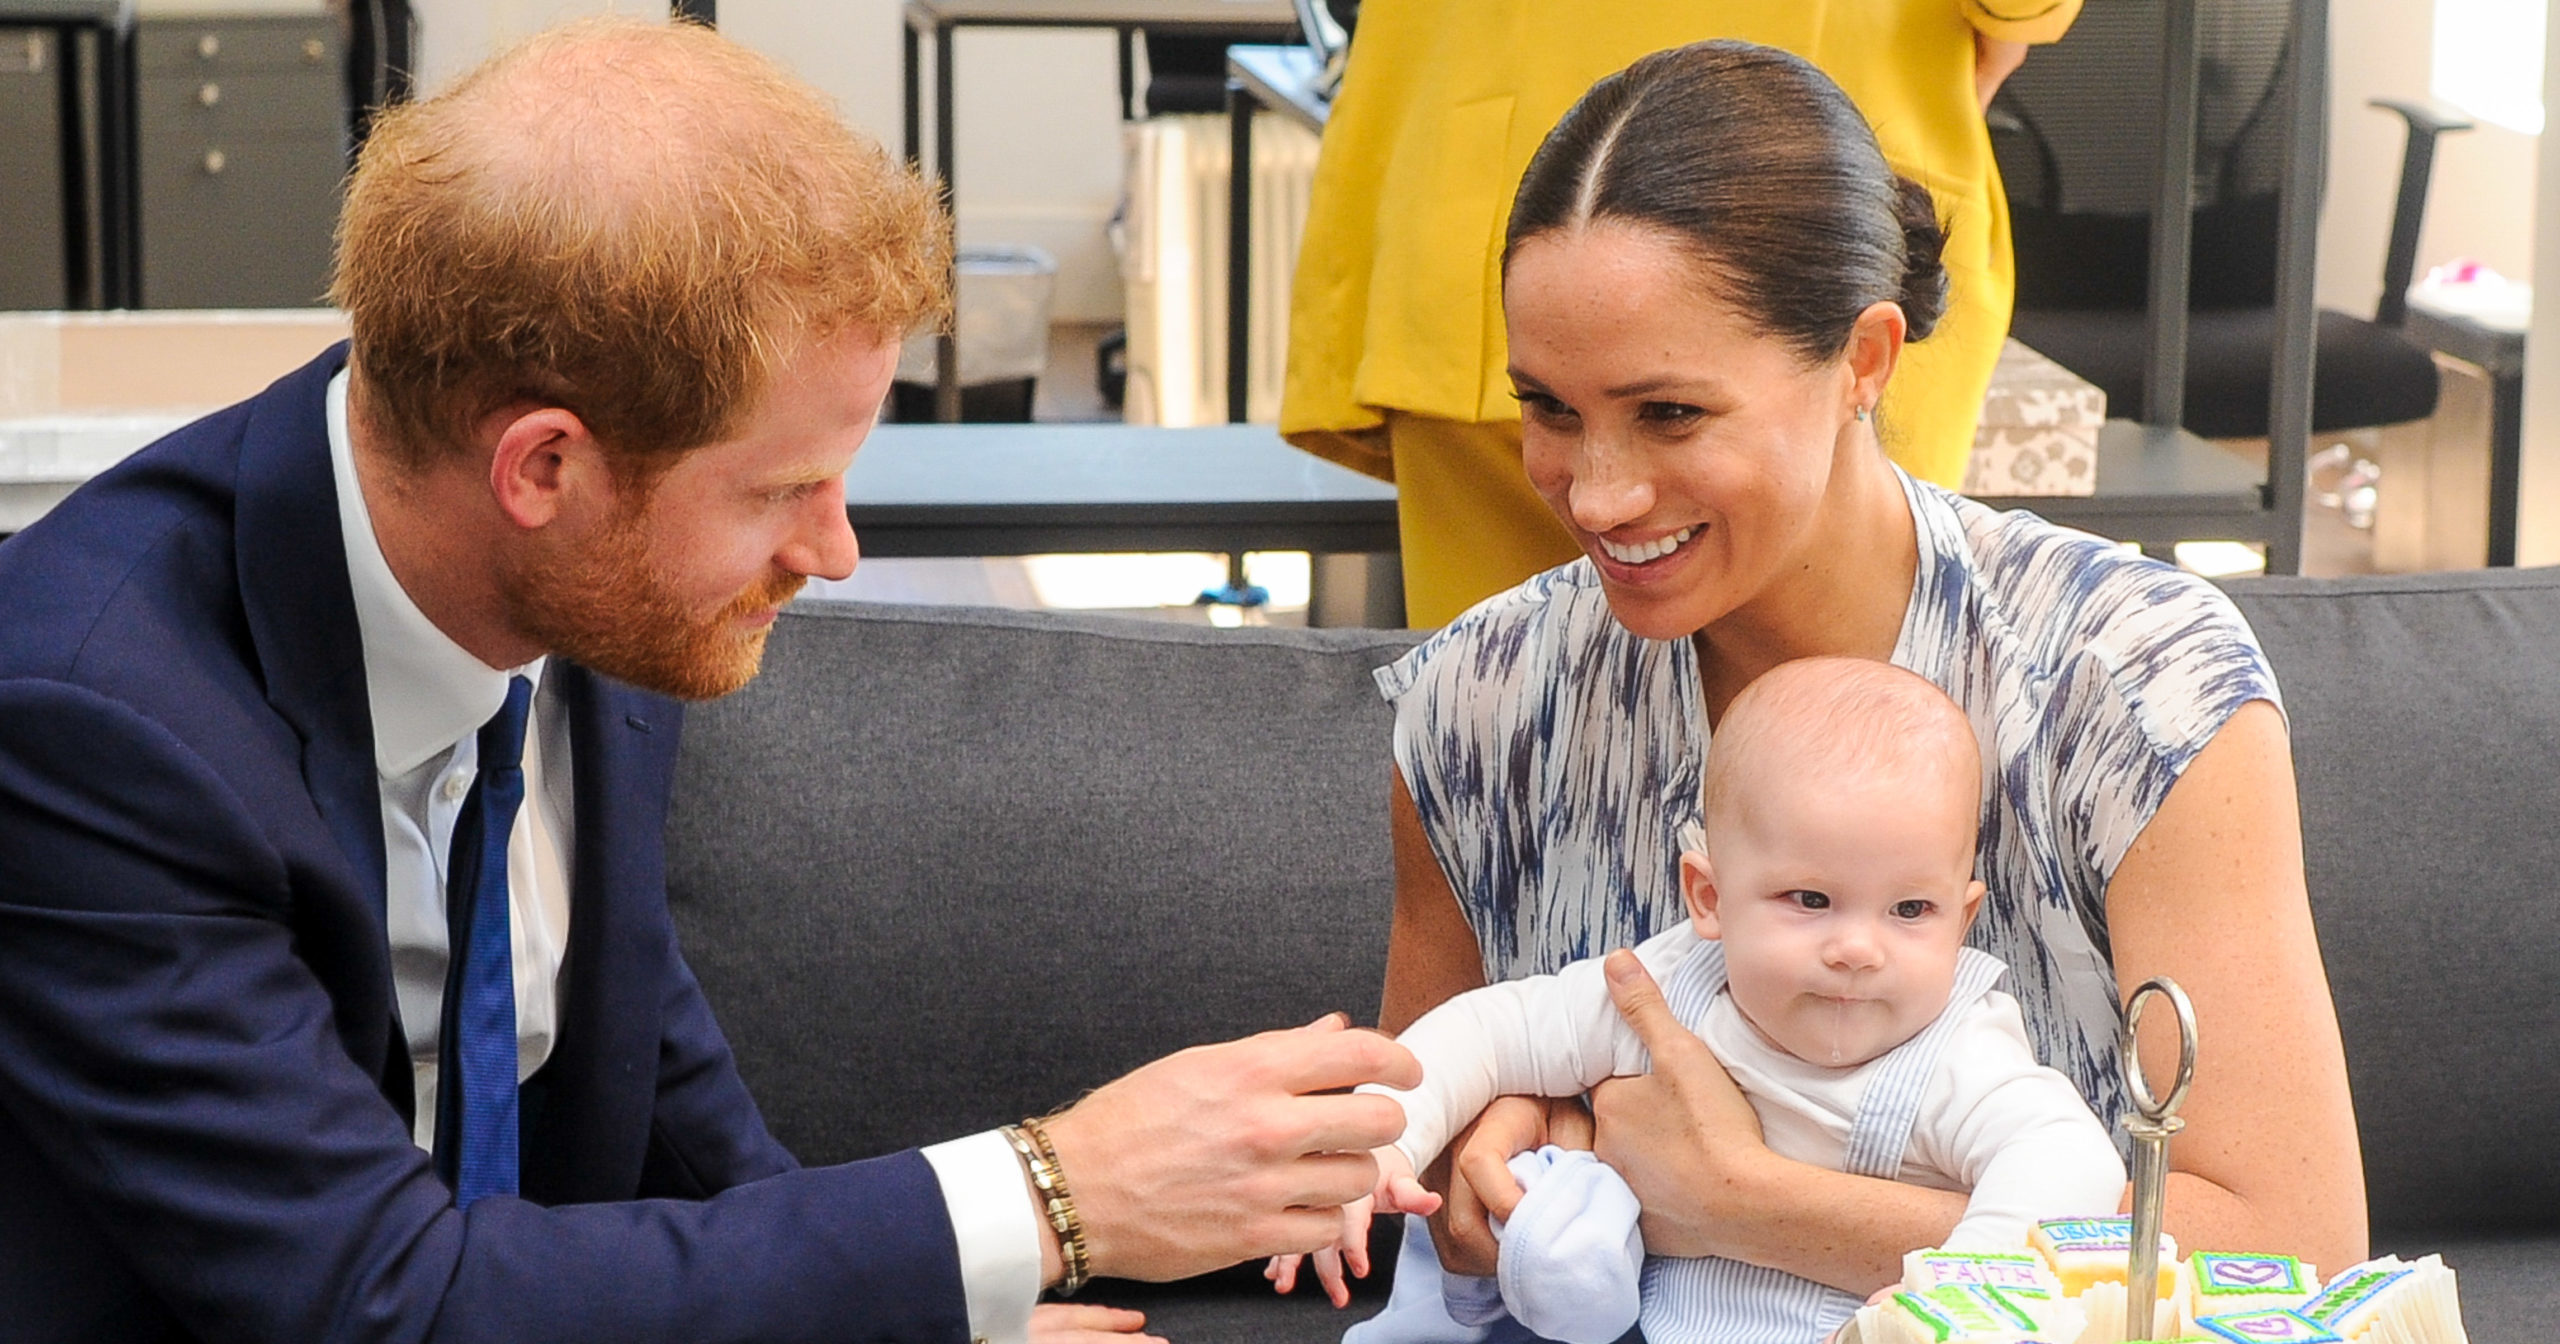 Prince Harry and Meghan Markle's plans for baby Archie's first birthday revealed